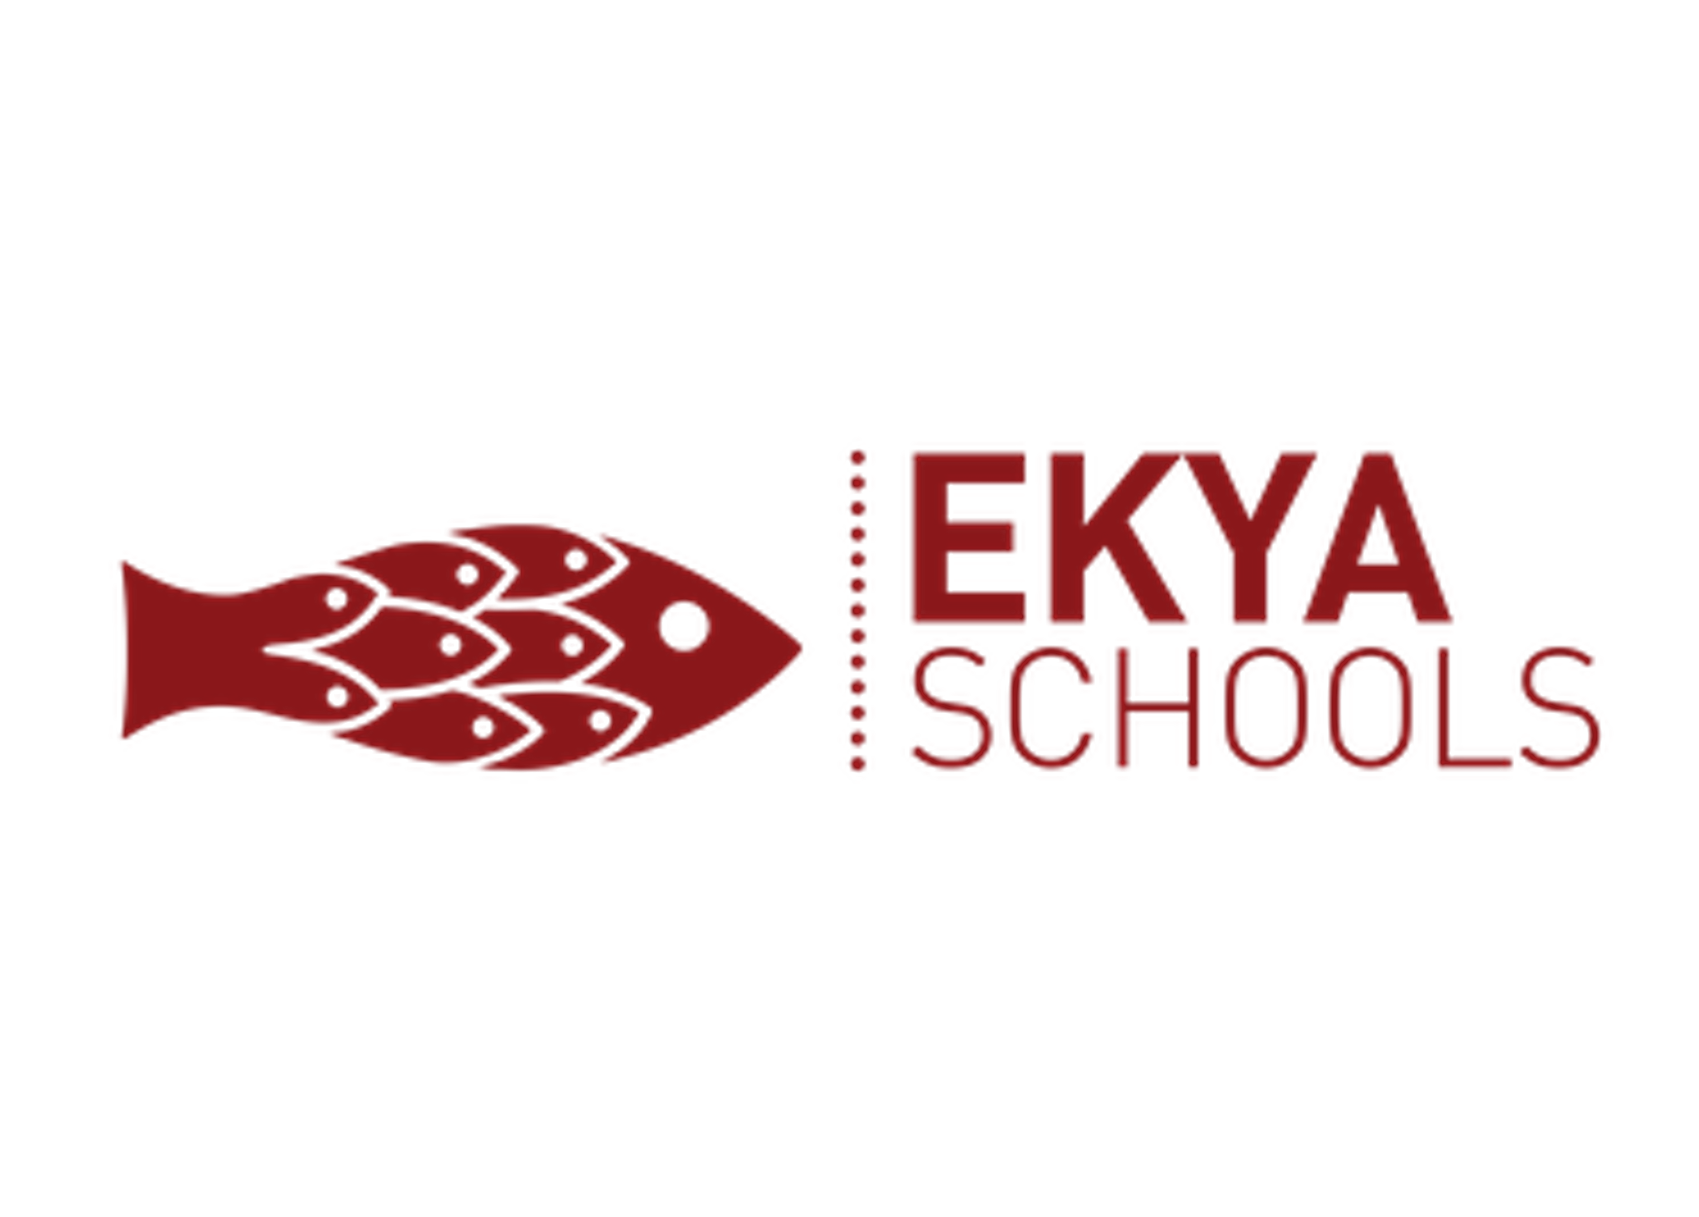 Ekya schools, education, video, lockdown, virtual learning, edtech, e-learning, learning never stops